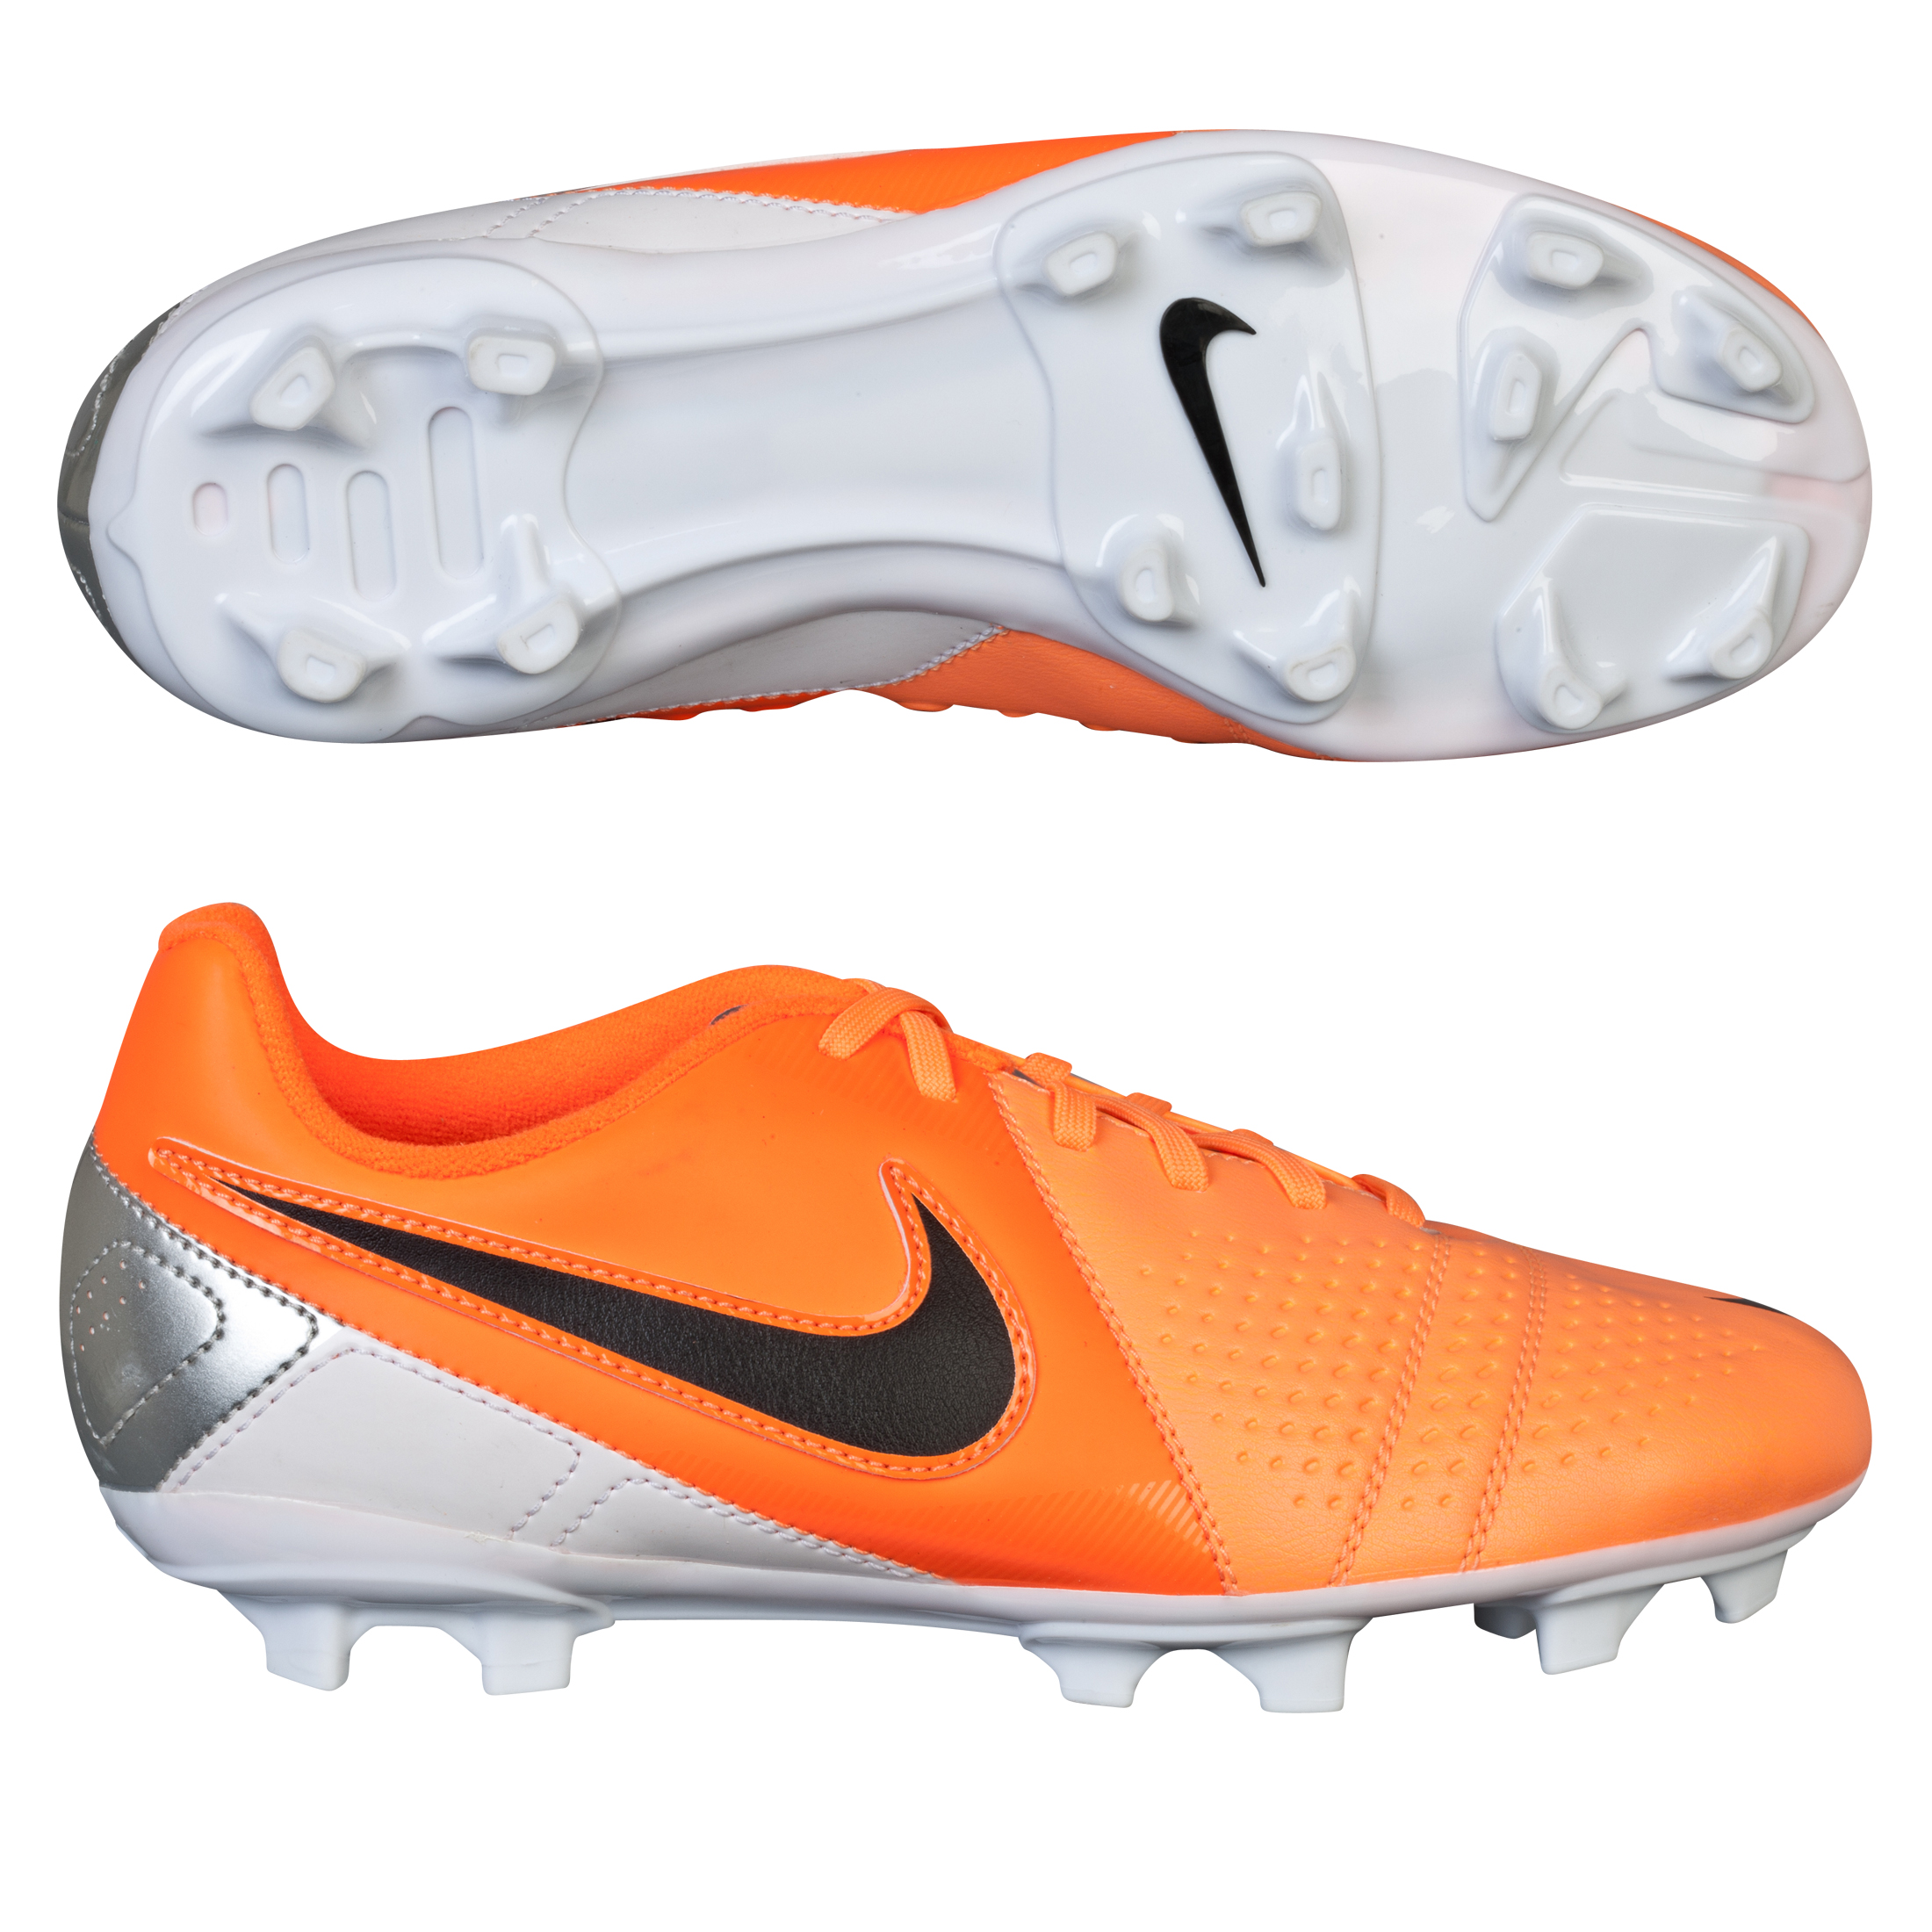 Nike CTR360 Libretto III Firm Ground Football Boots - Kids Orange